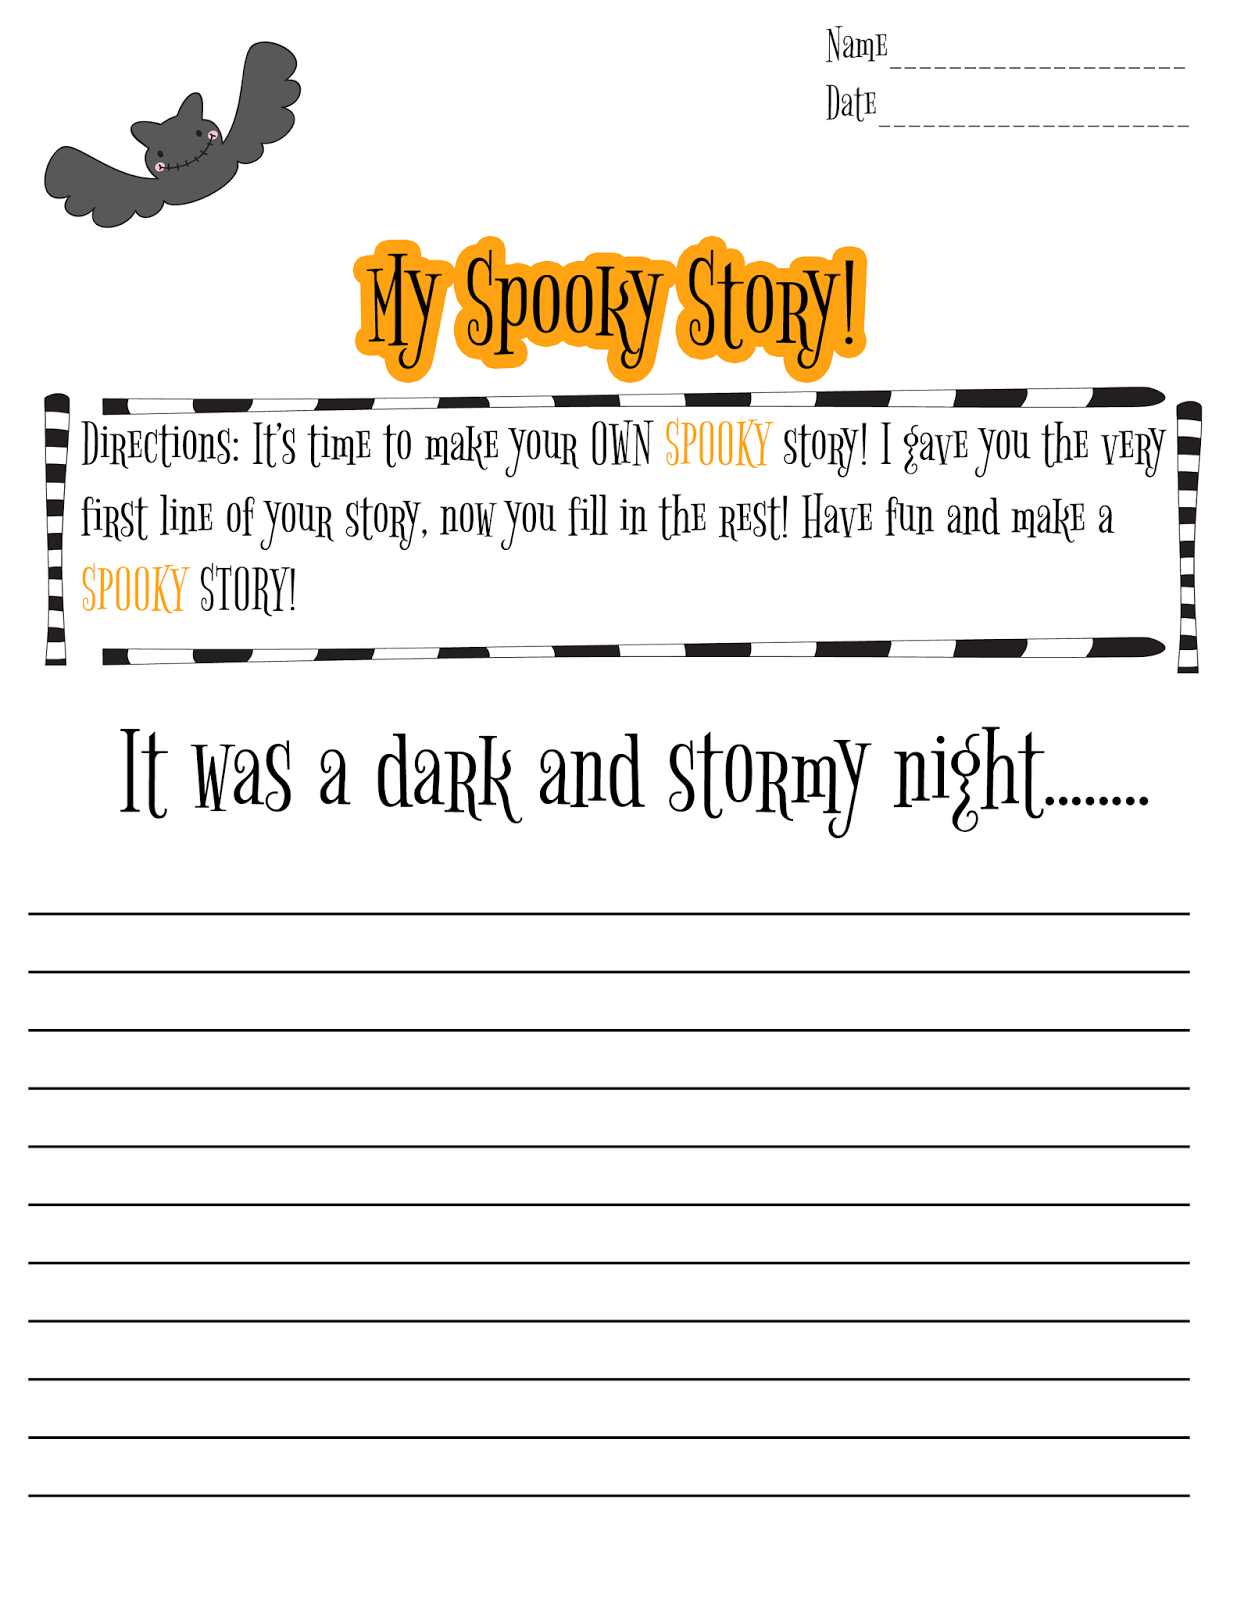 vaultgirl com labels 3rd grade 4th grade 5th grade halloween writing assignments spooky story prompts teaching writing prompts